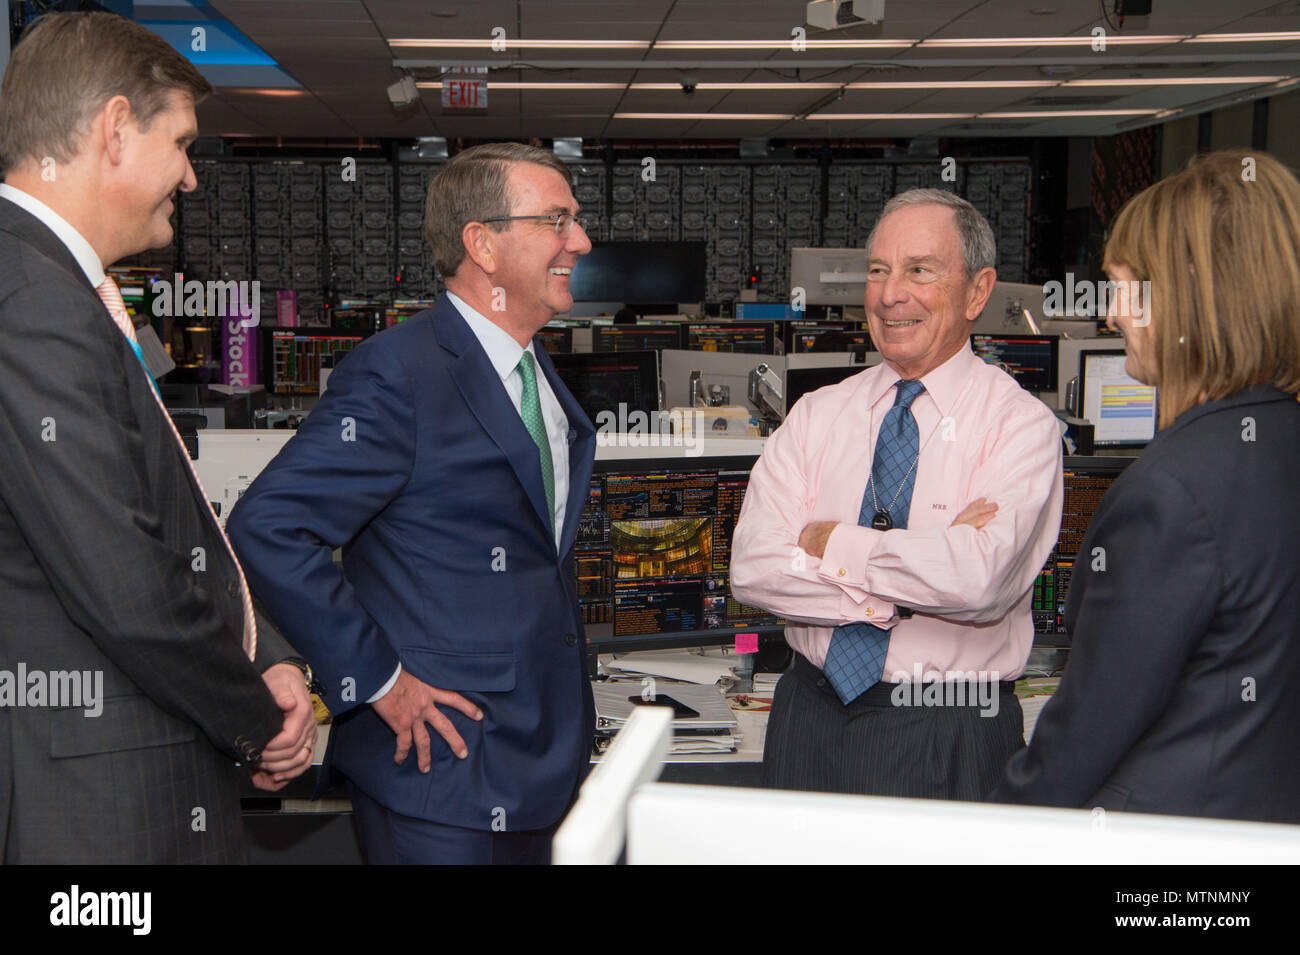 Secretary of Defense Ash Carter speaks with Mike Bloomberg, the founder and CEO of Bloomberg L.P., at the Bloomberg Television headquarters building in New York City on Jan. 12, 2017. (DOD photo by U.S.  Air Force Staff Sgt. Jette Carr) - Stock Image